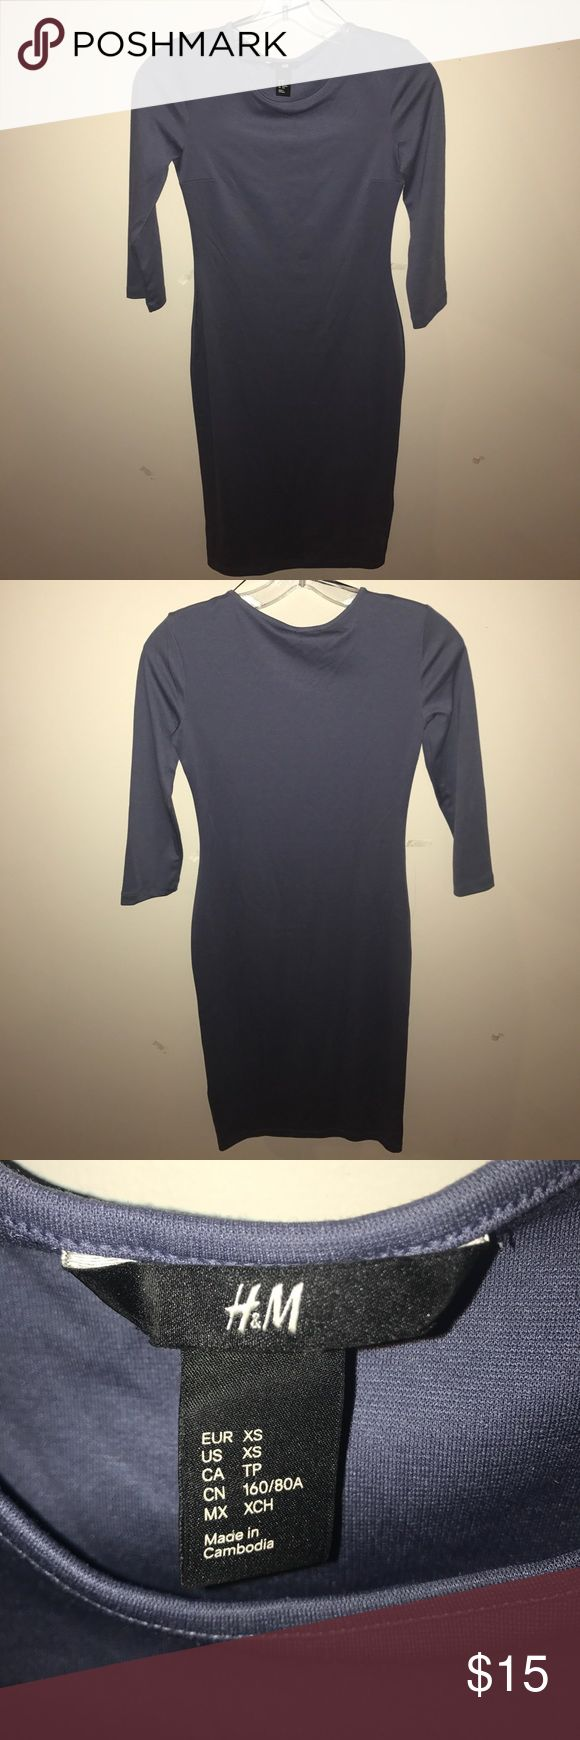 """H&M Gray Blue Bodycon Dress- size xs Cute H&M blue gray bodycon midi dress. Size XS. Back of the shoulder to the hem measures 40"""". WORN ONCE and in great condition! H&M Dresses Midi"""